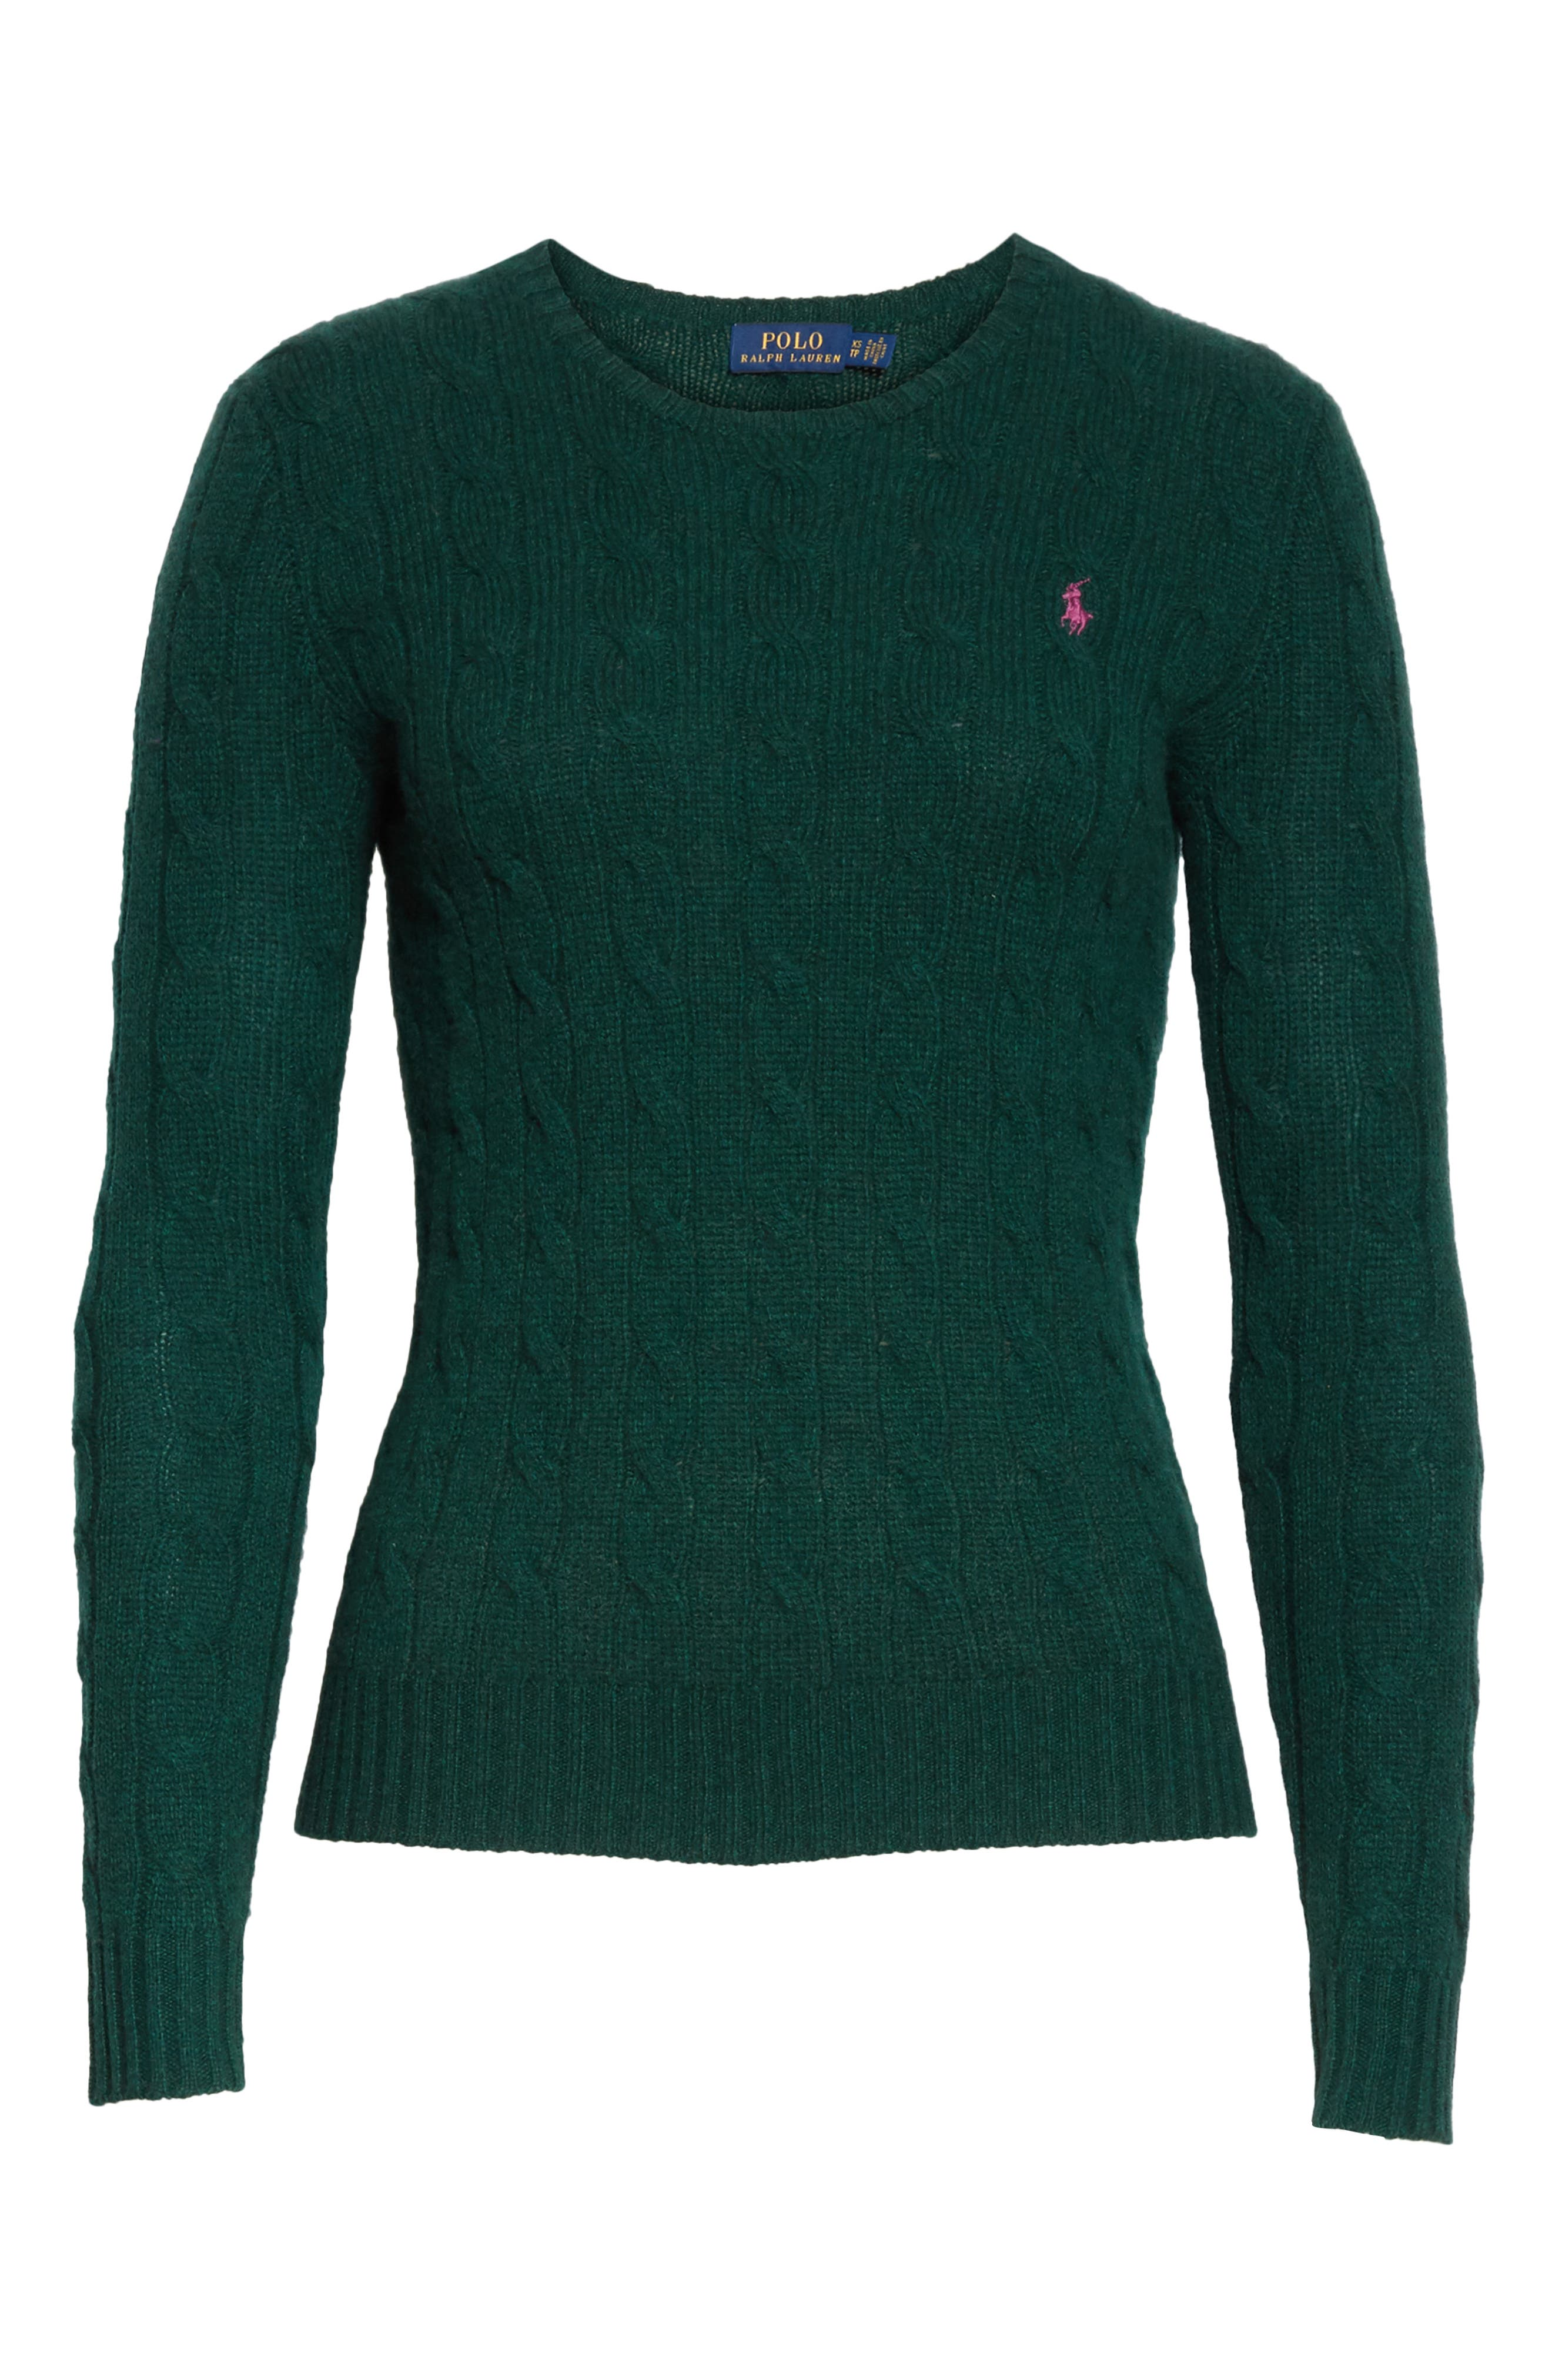 46abbd224a Women's Polo Ralph Lauren Clothing | Nordstrom